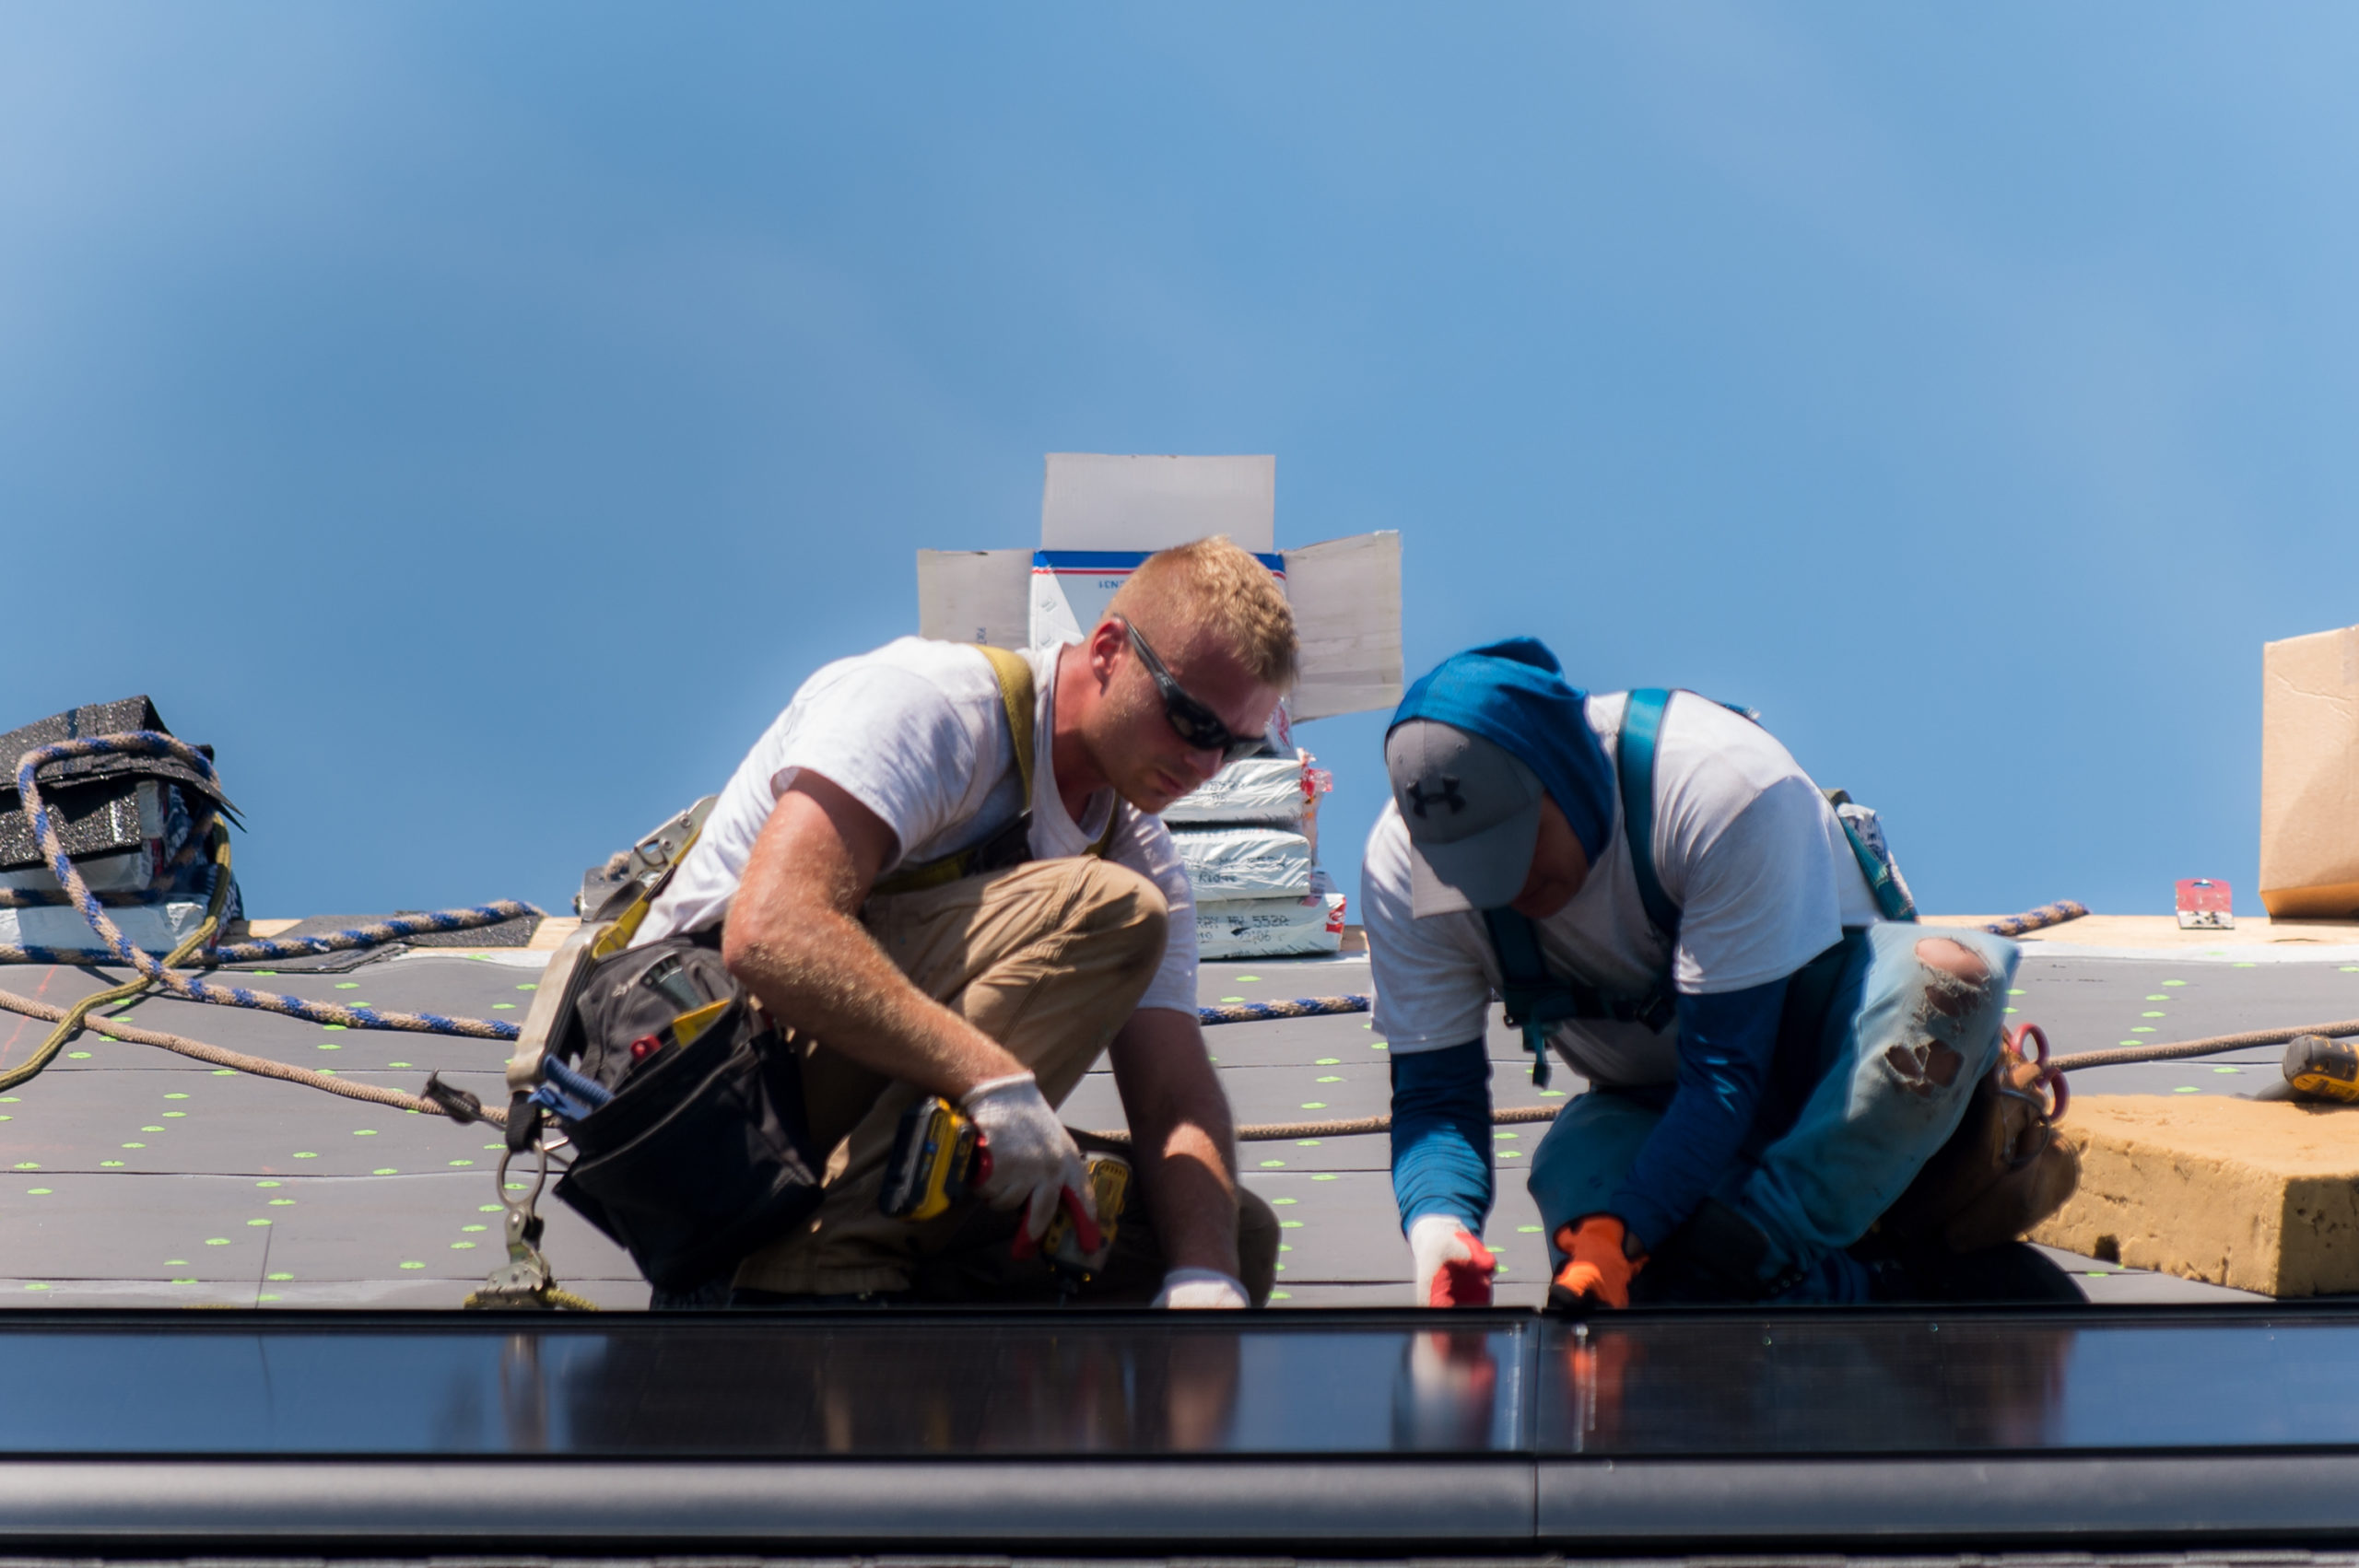 Renewable energy jobs grew to 12 million globally despite pandemic, supply chain challenges